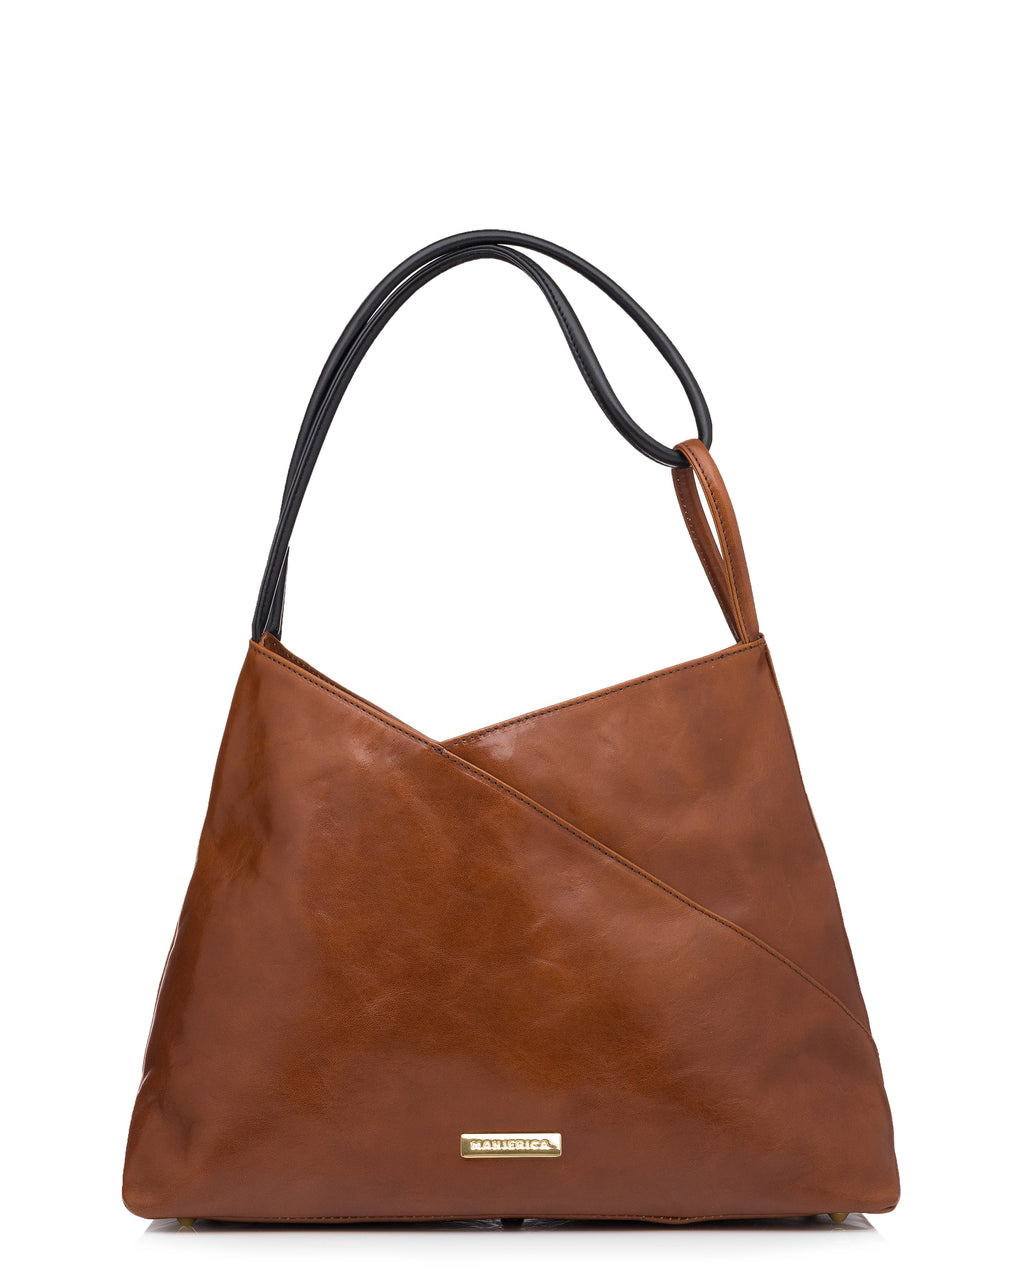 MANJERICA SASHA CHOCOLATE Vintage Inspired Tote in Vegetable Tanned Leather